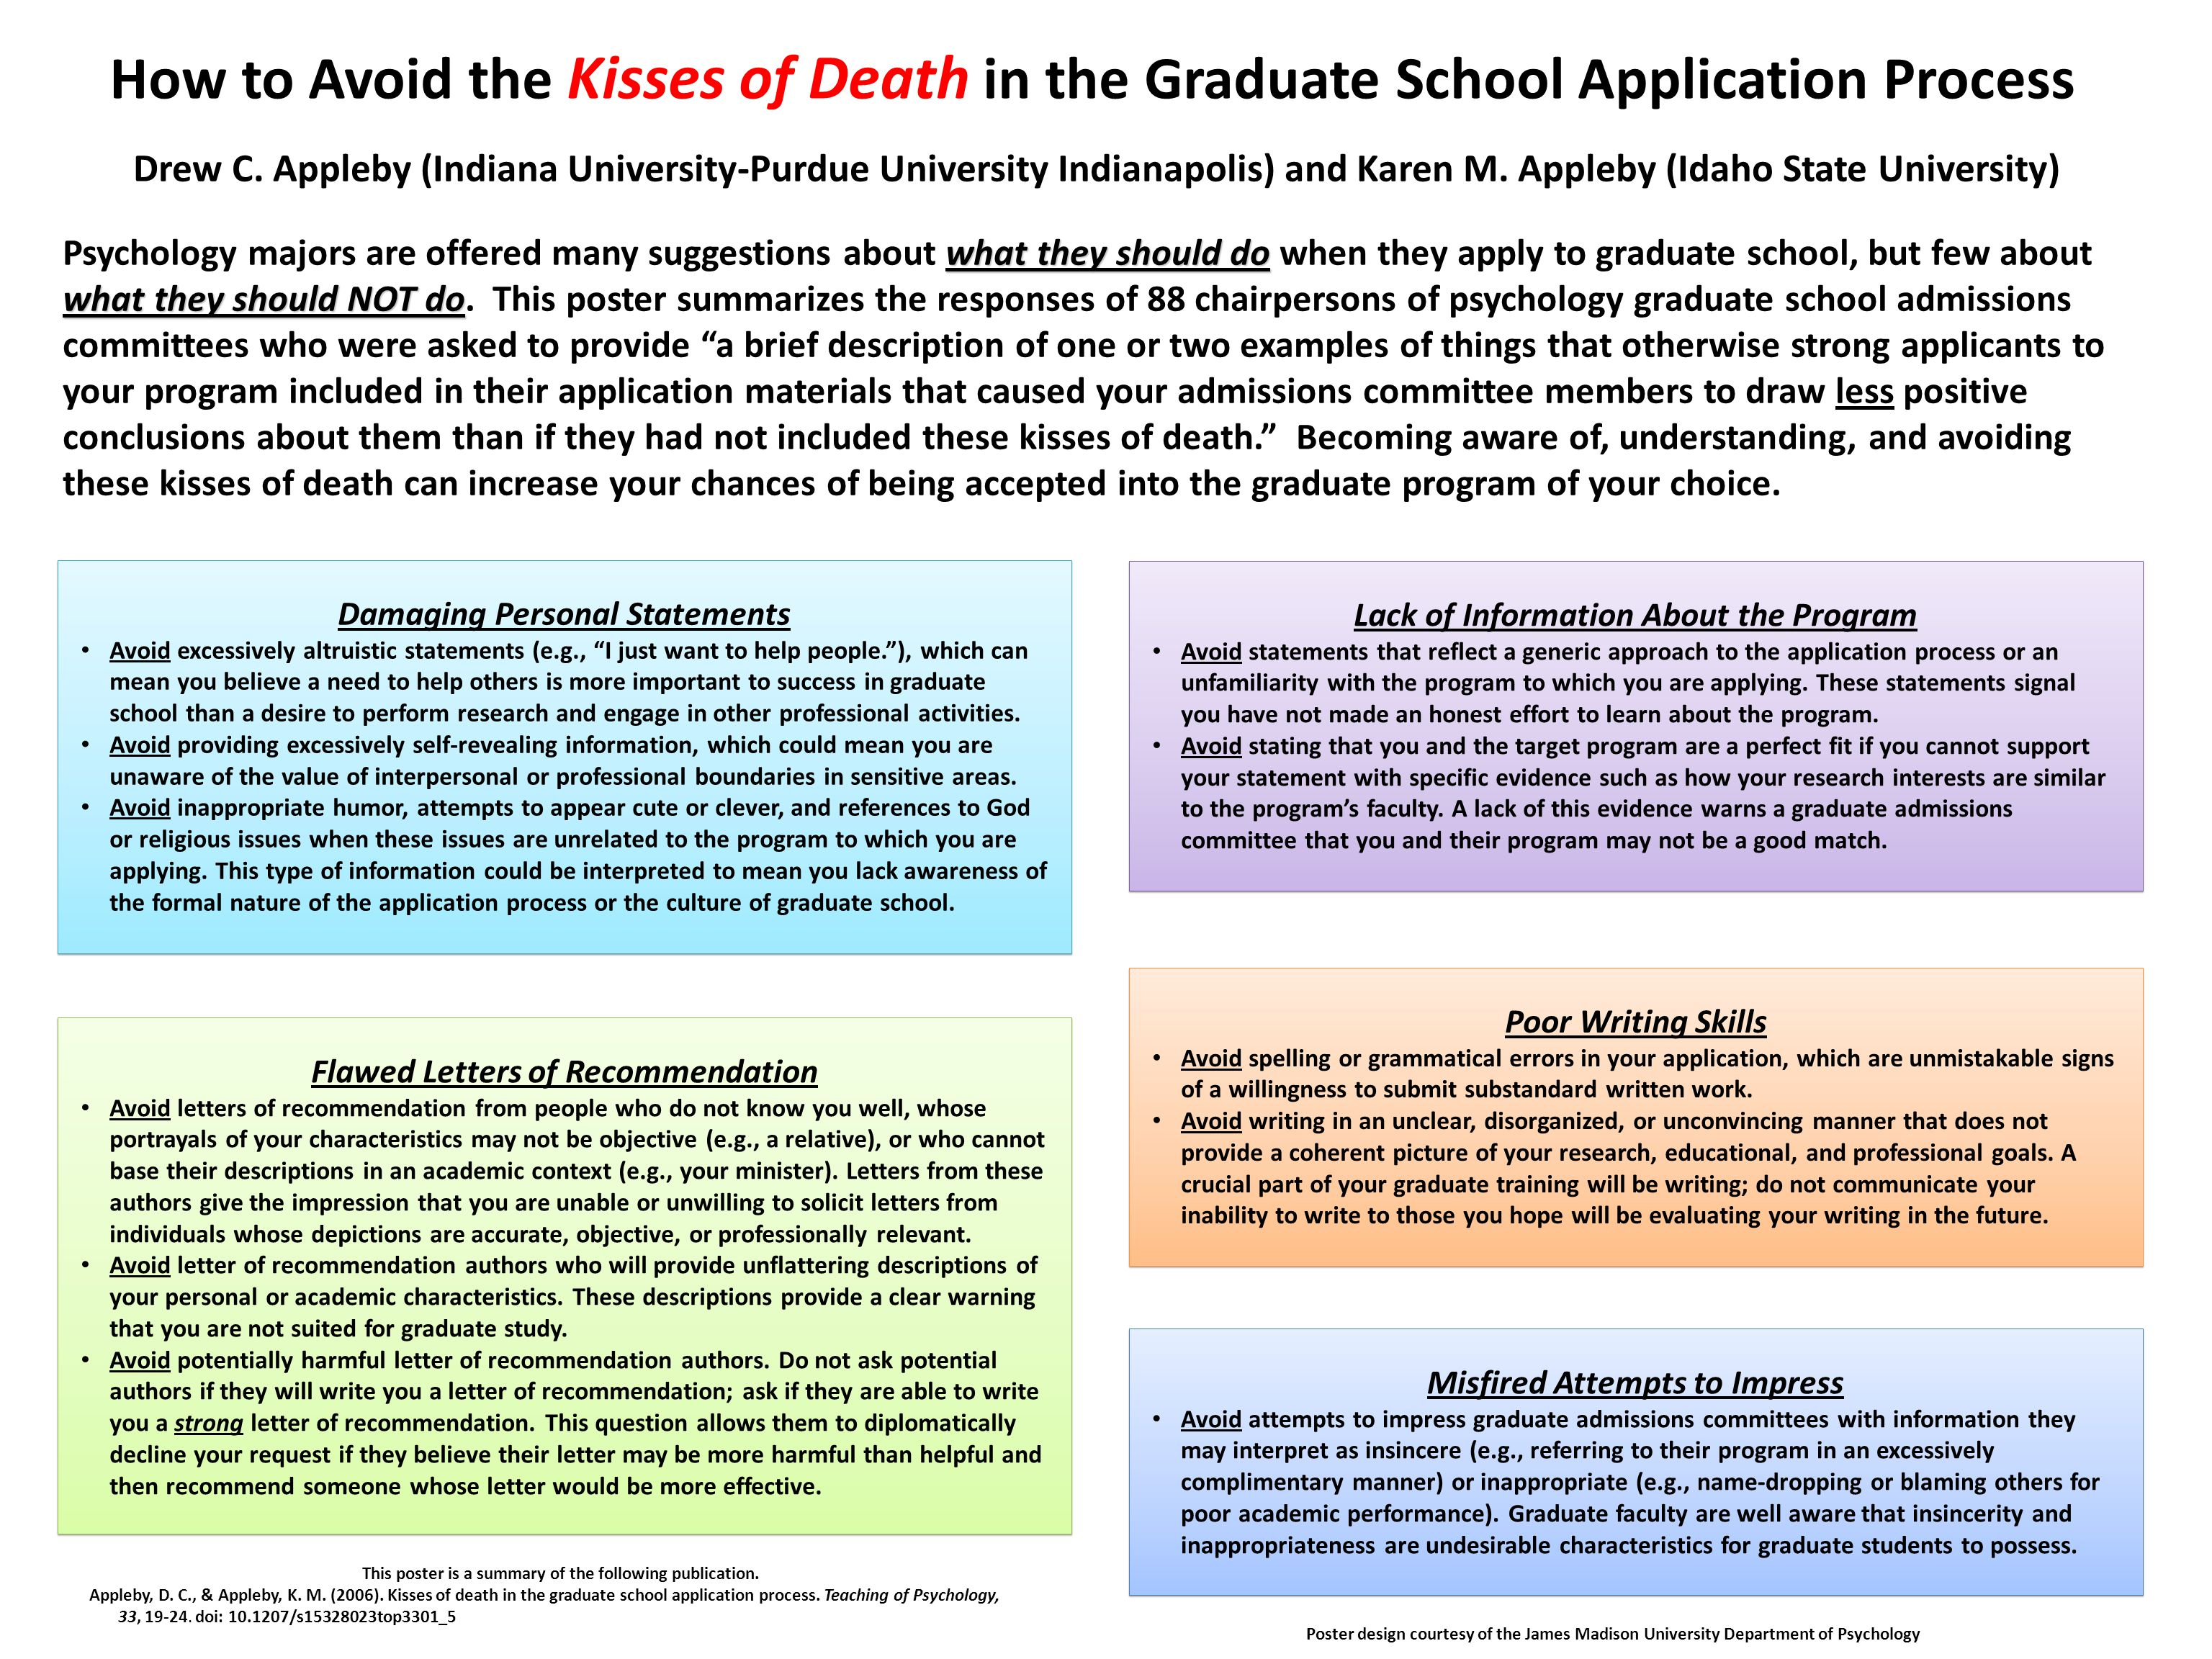 How To Avoid The Kisses Of Death In The Graduate School Application